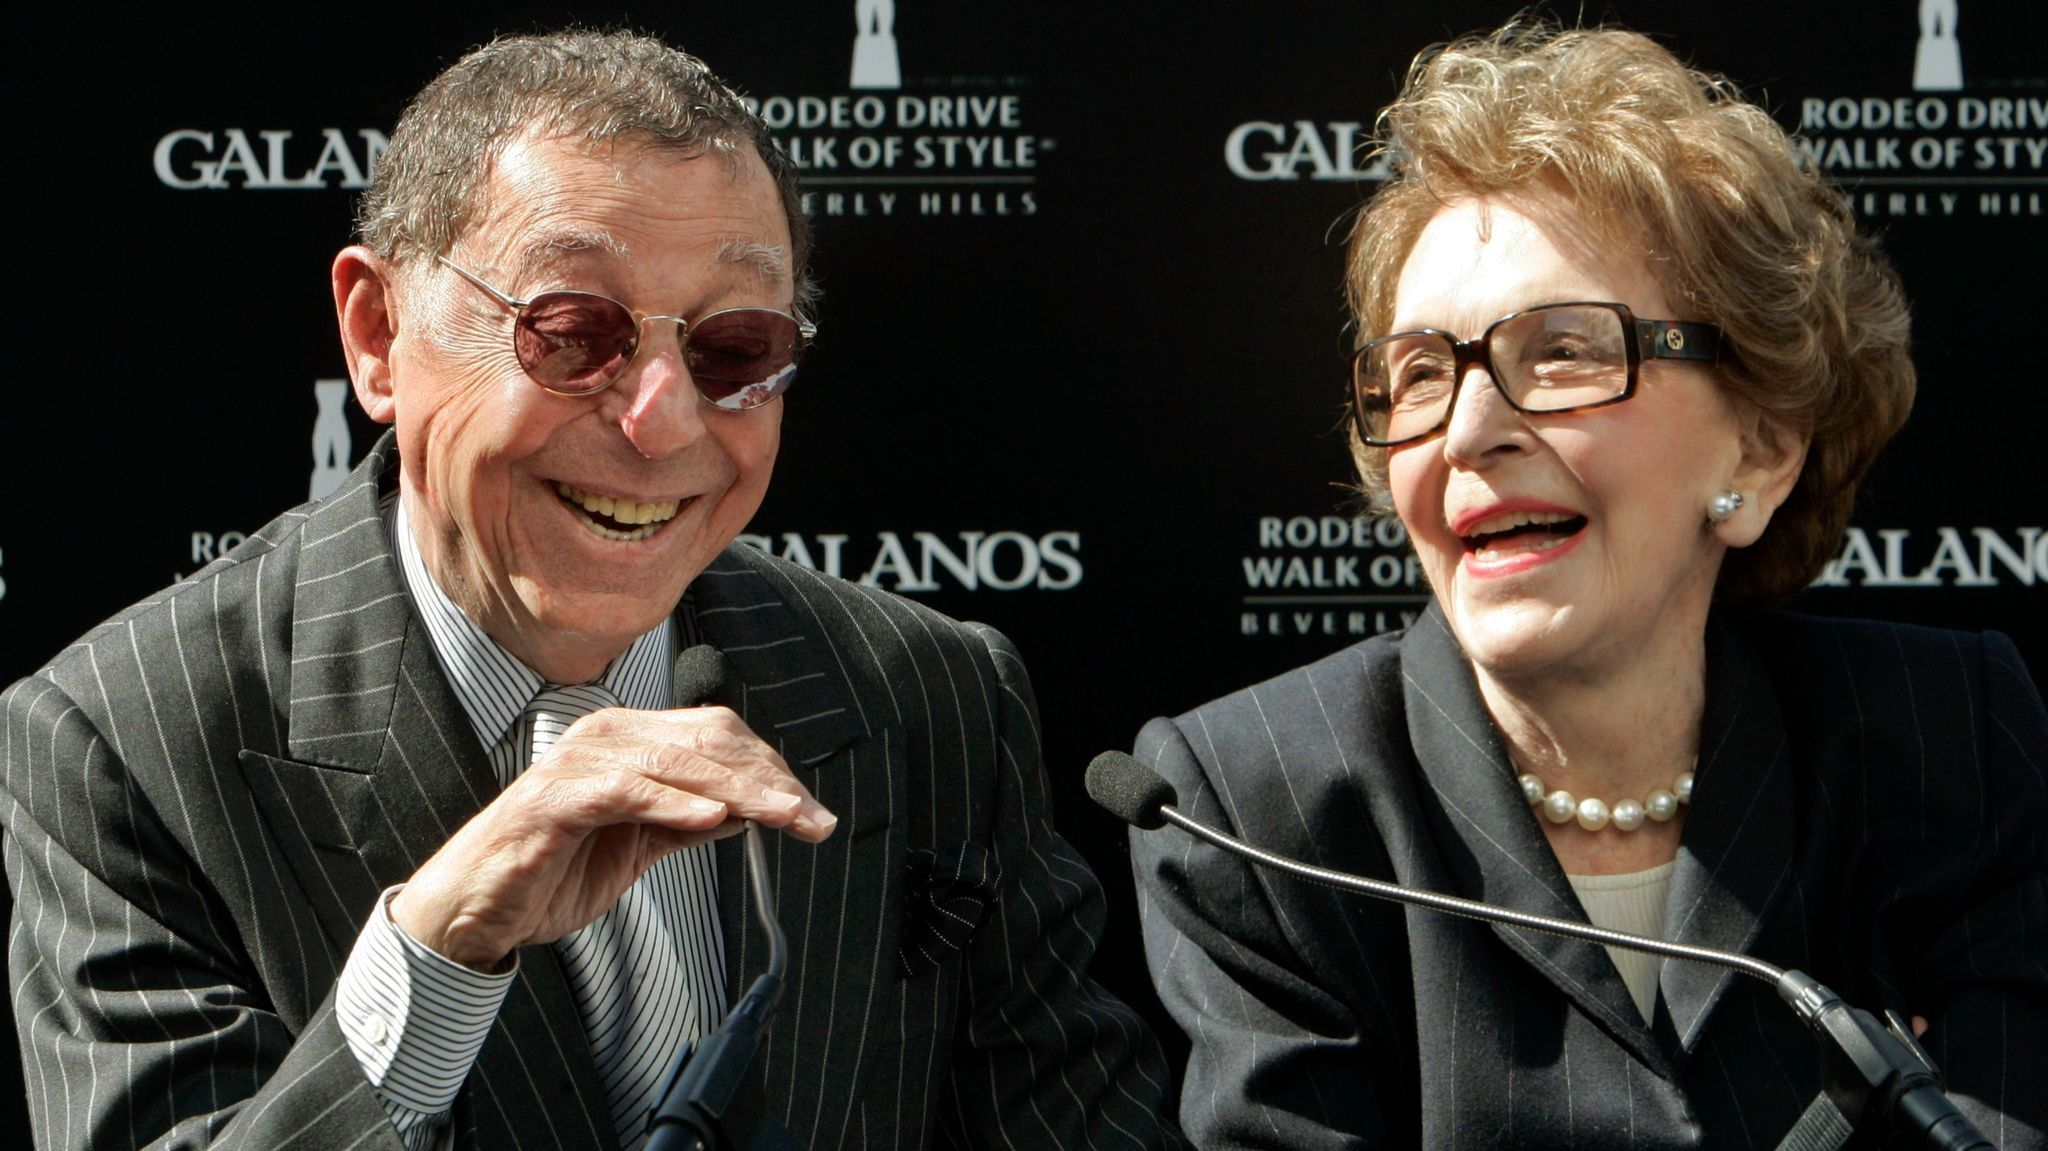 James Galanos, whose gowns were worn by Nancy Reagan, Judy Garland and Heidi Klum, was 'America's couturier'